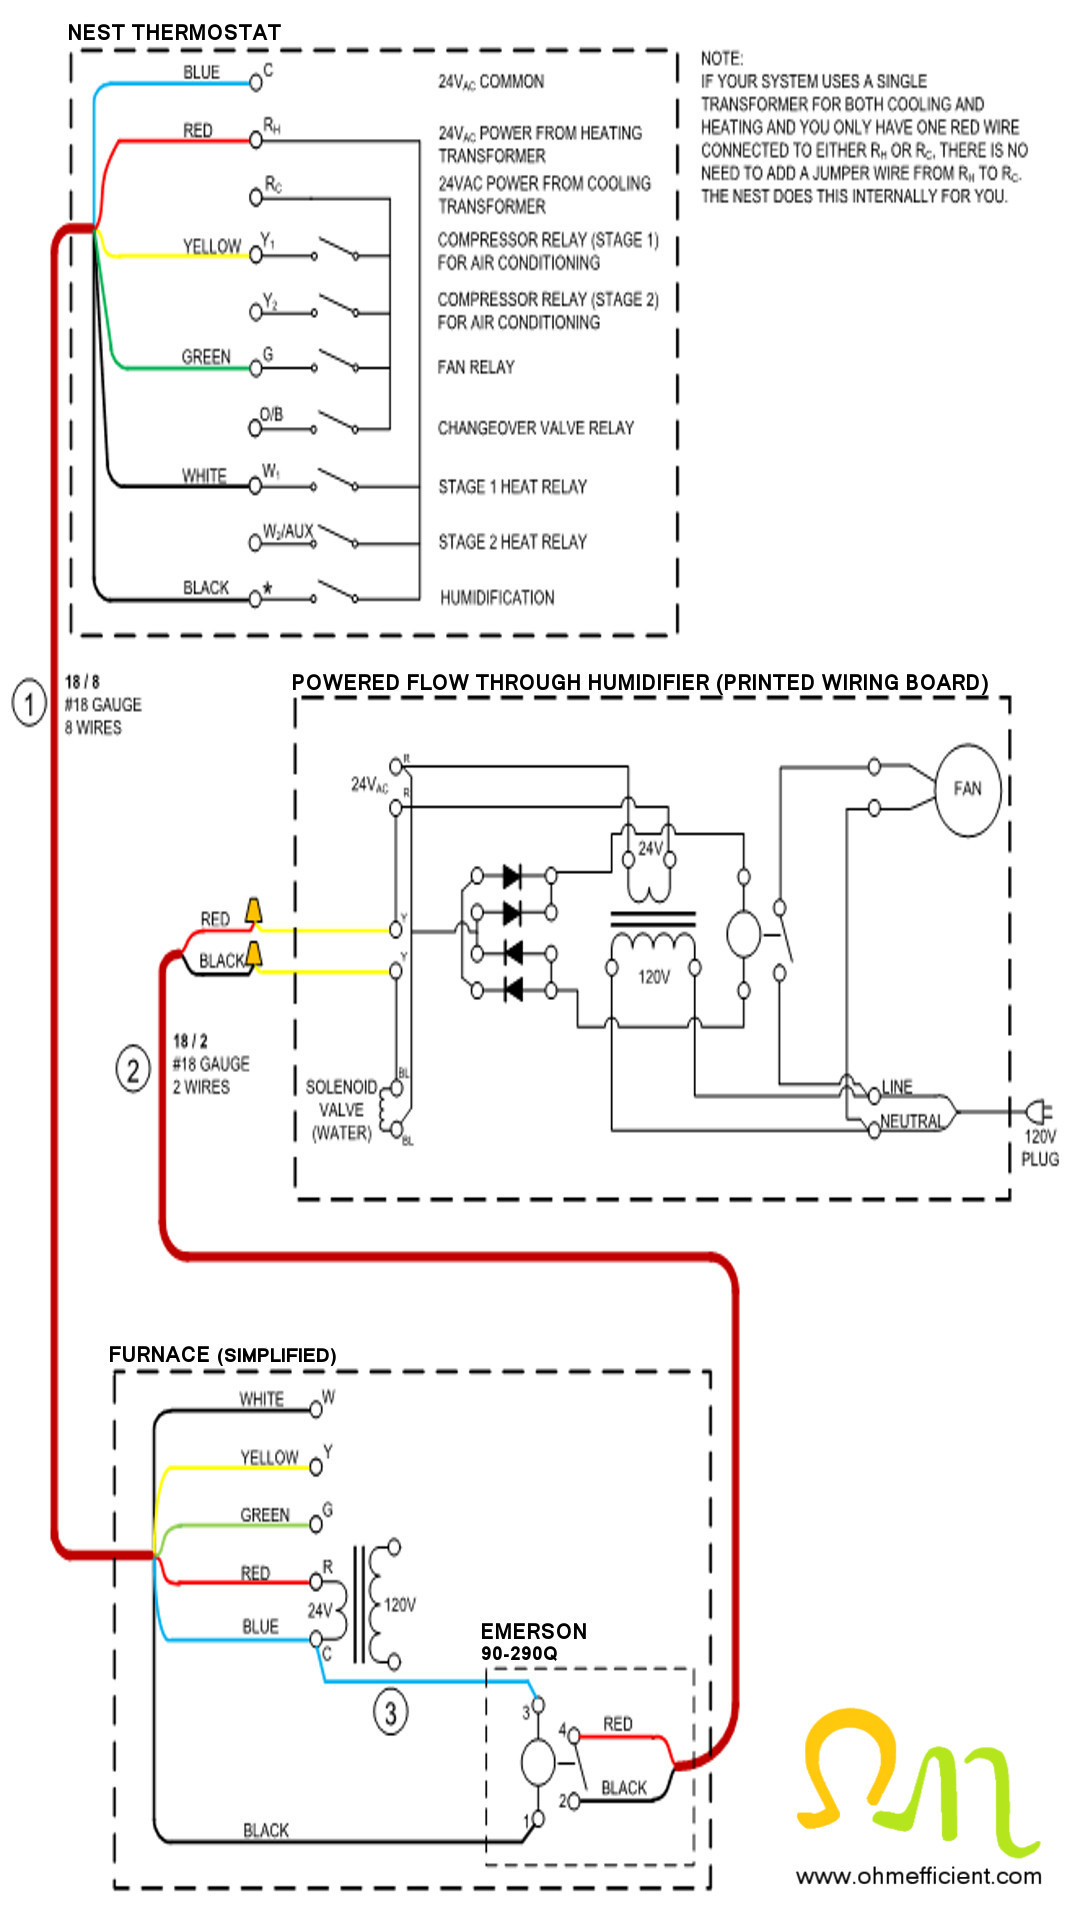 Powered Humidifier Wiring Diagram